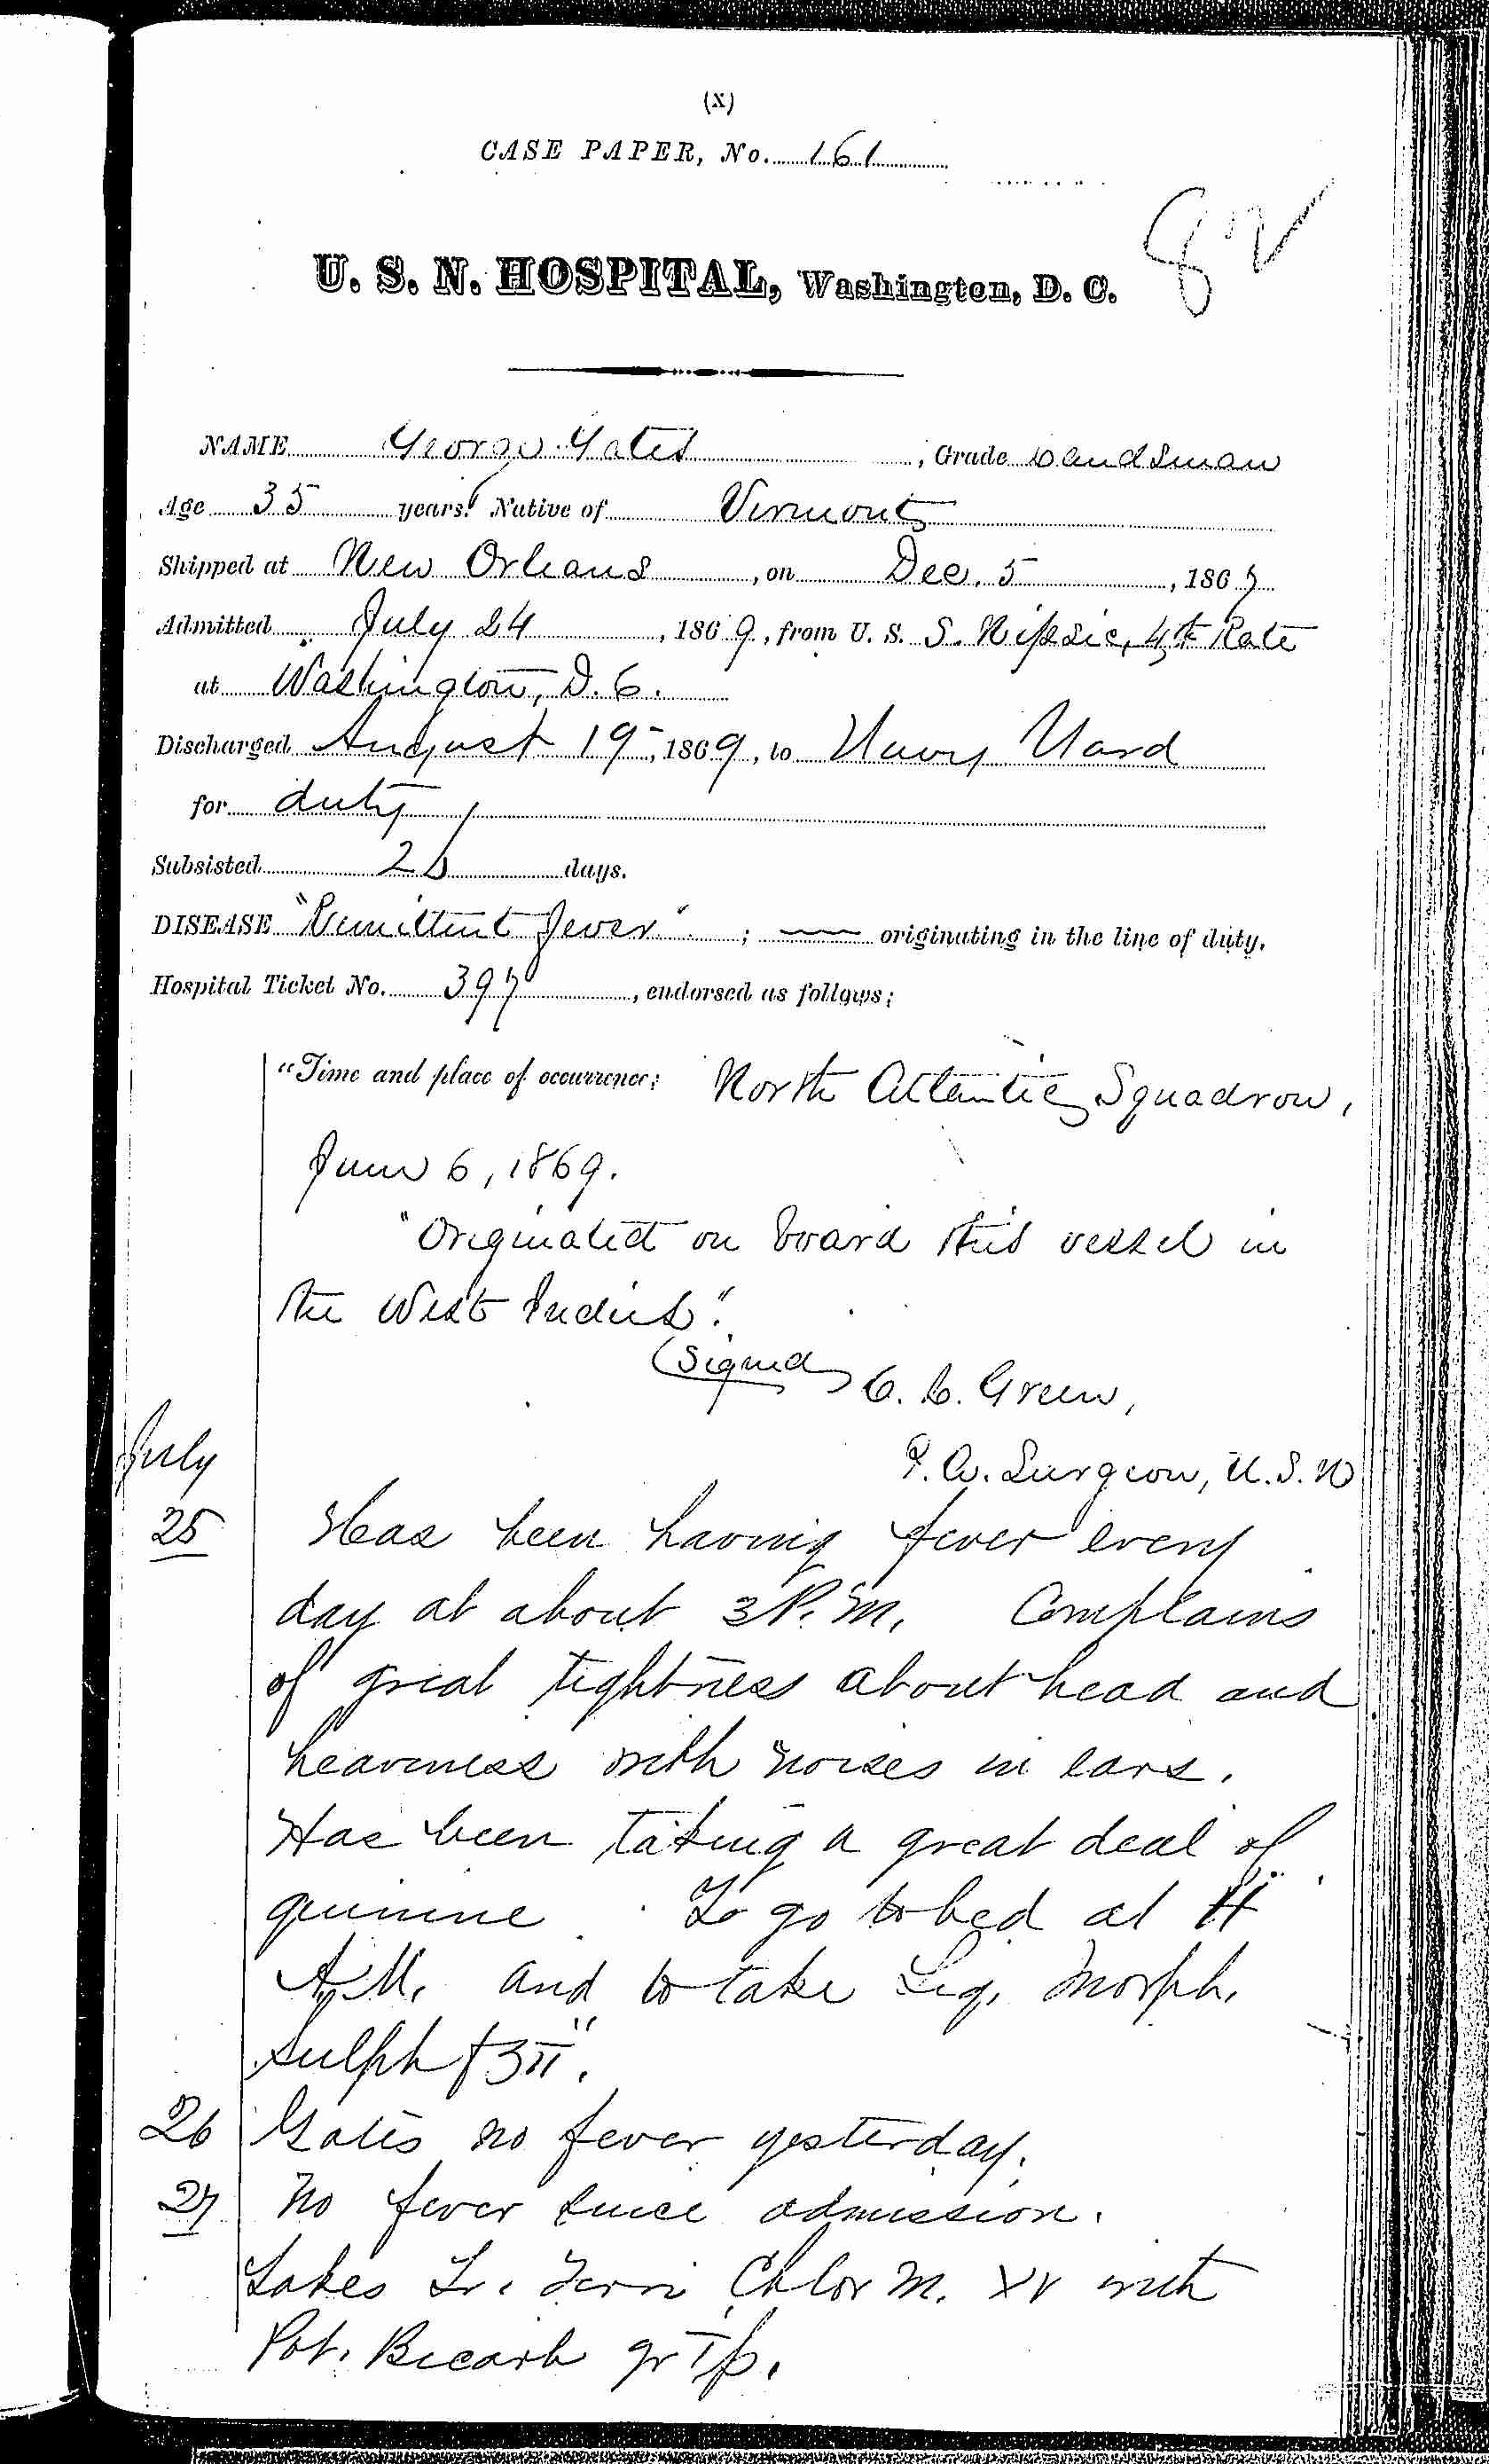 Entry for George Gates (page 1 of 2) in the log Hospital Tickets and Case Papers - Naval Hospital - Washington, D.C. - 1868-69